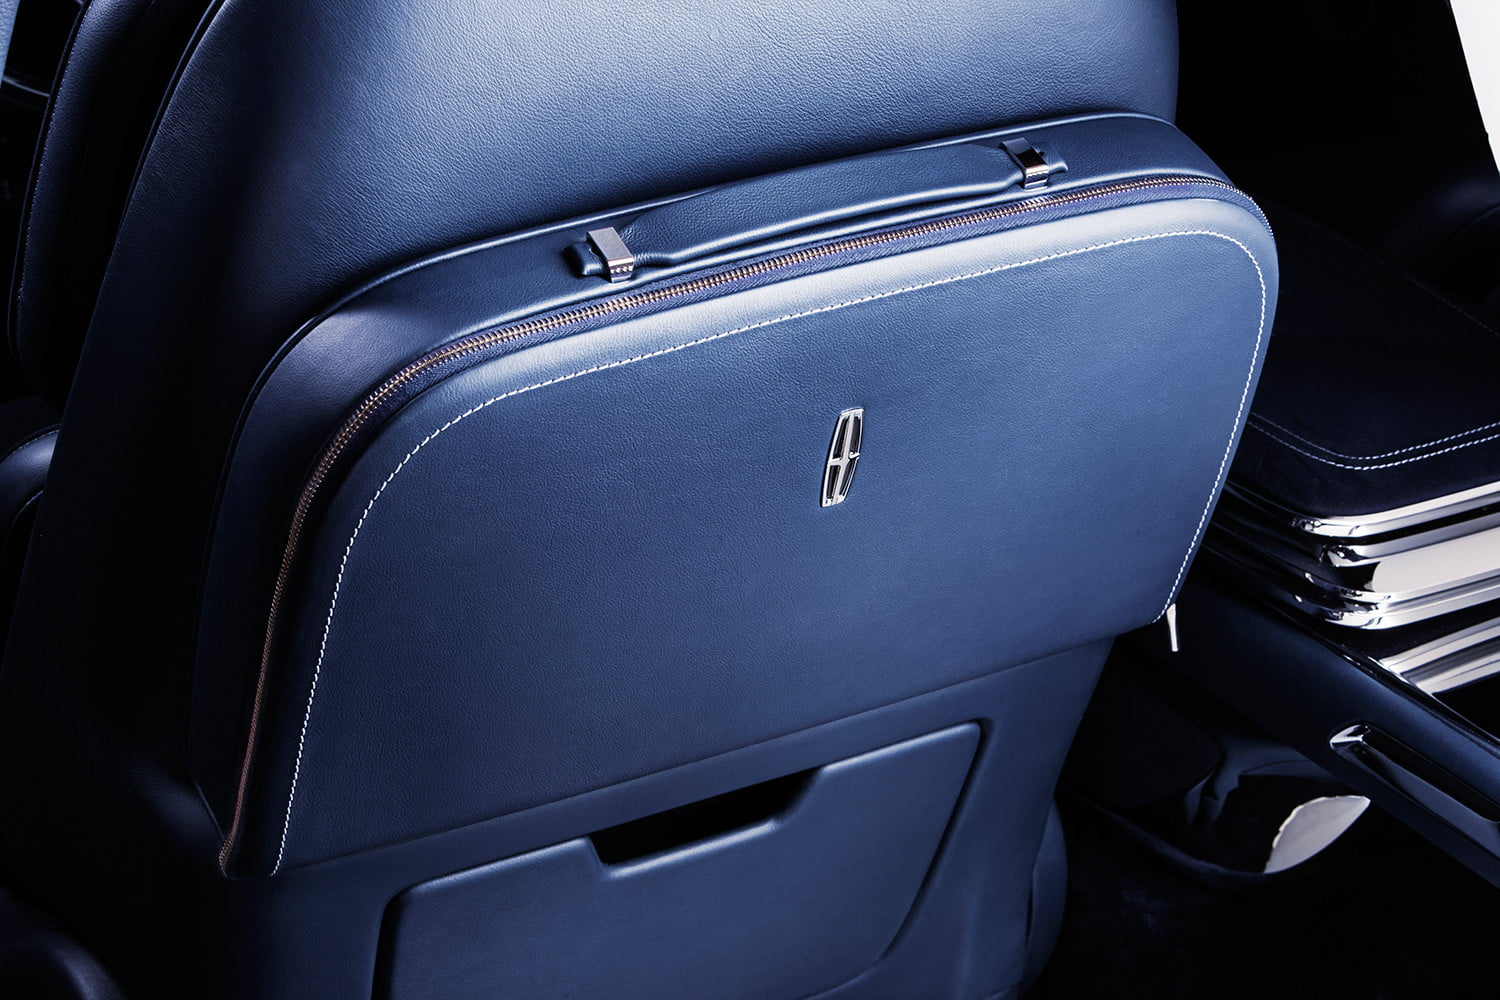 top 5 concept cars of 2015 opinion pictures specs lincolncontinentalconcept 09 detail travelcase